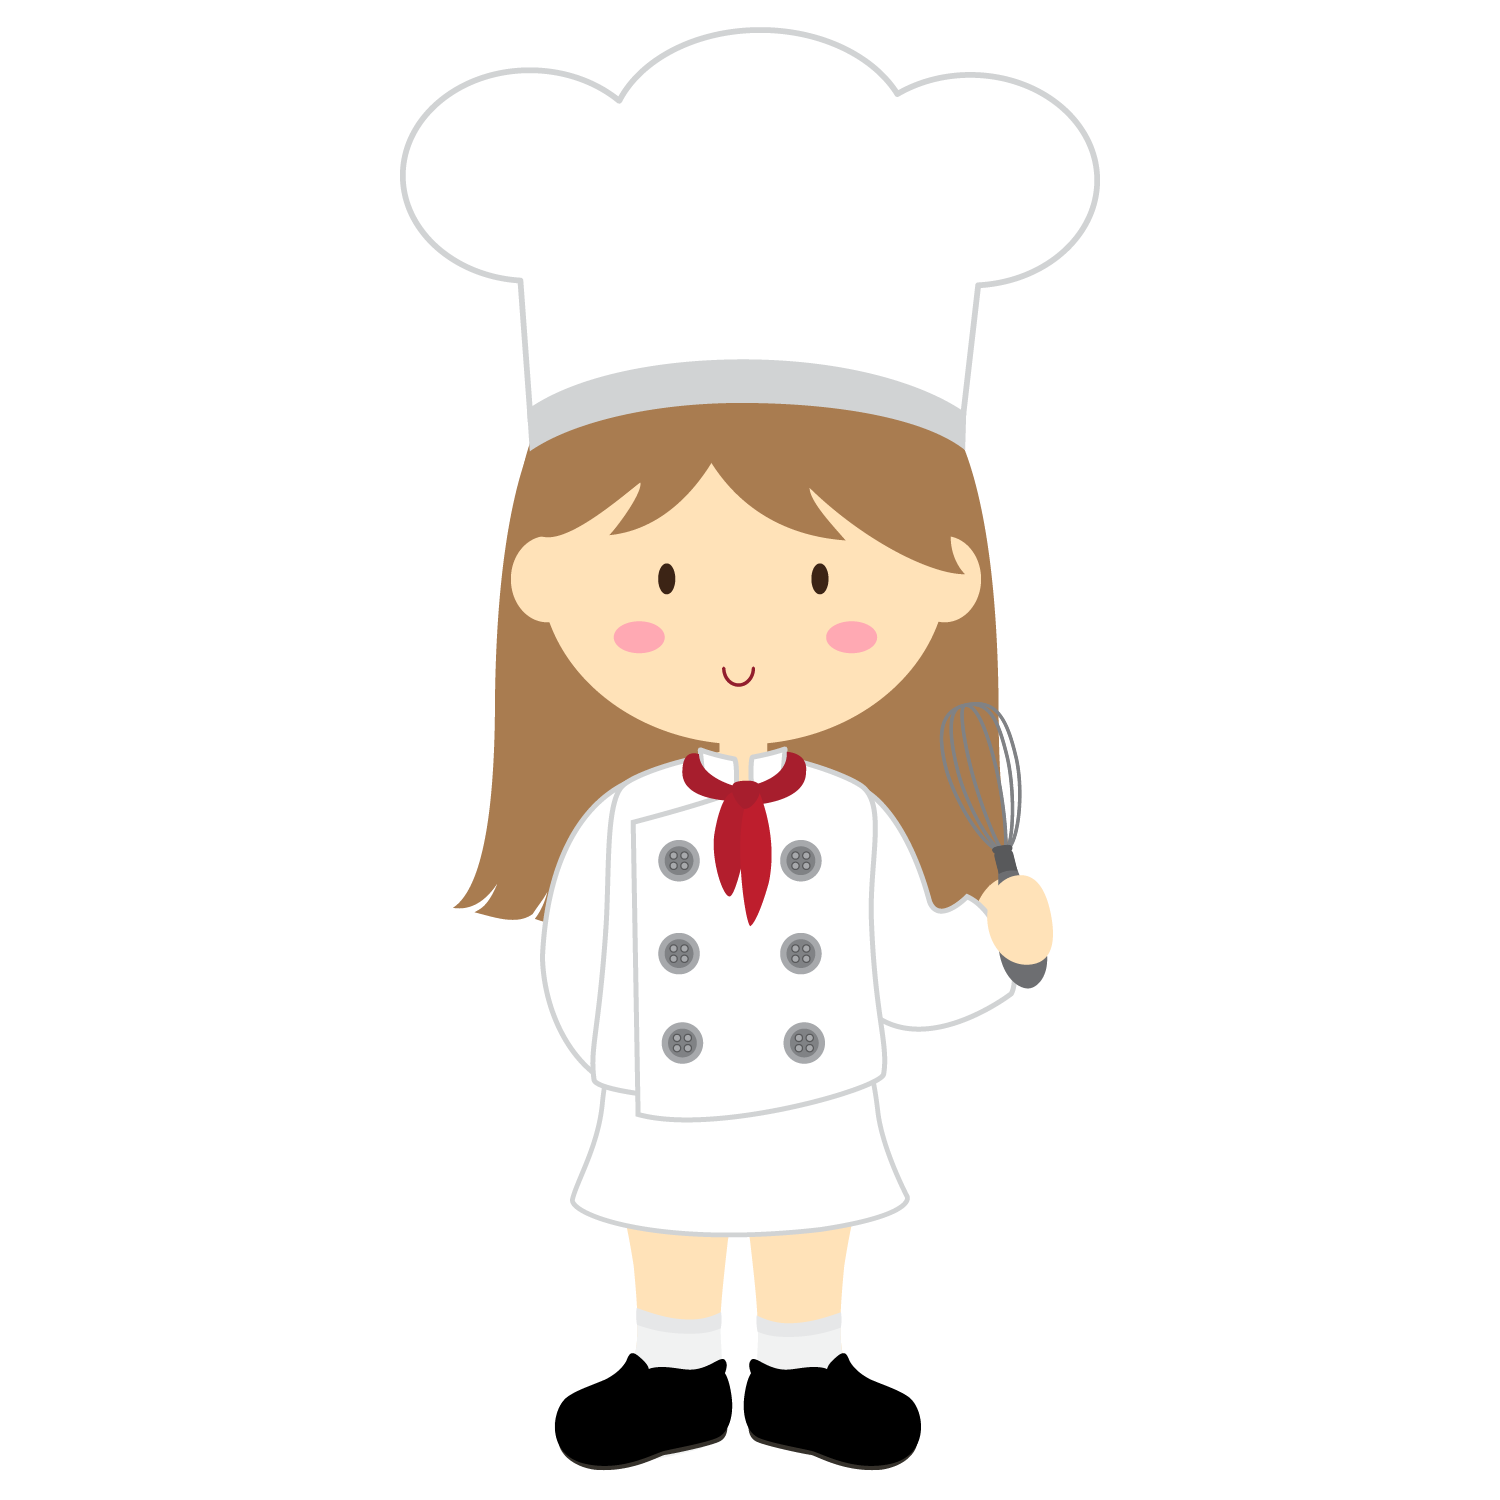 Ibiahr ntzfqhh png dekorace. Cookbook clipart personal chef